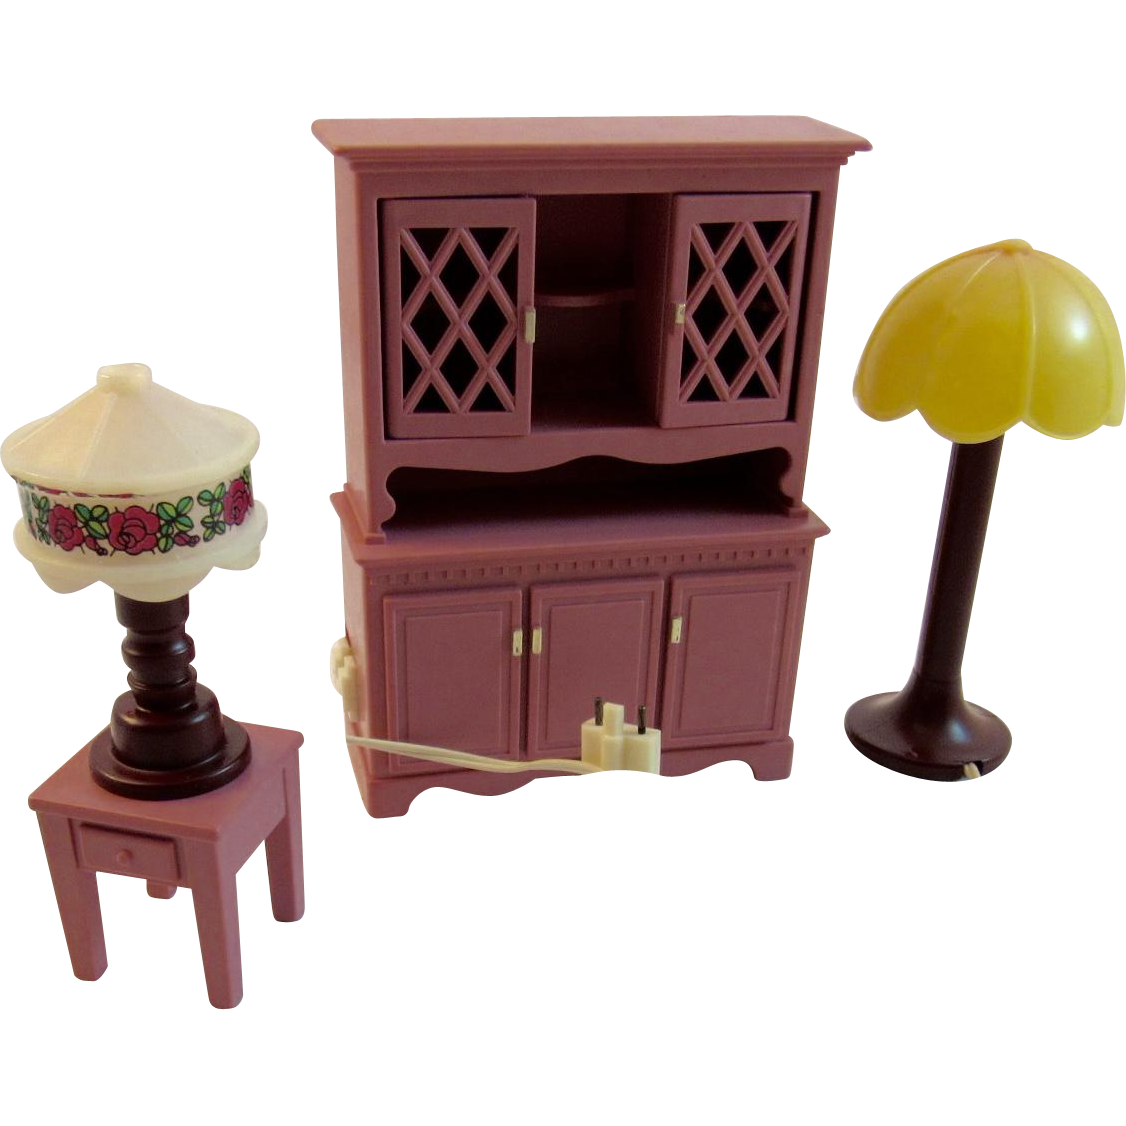 Fisher price doll house furniture - Fisher Price Hutch And 2 Lamps Working Condition Light Up Dollhouse Furniture